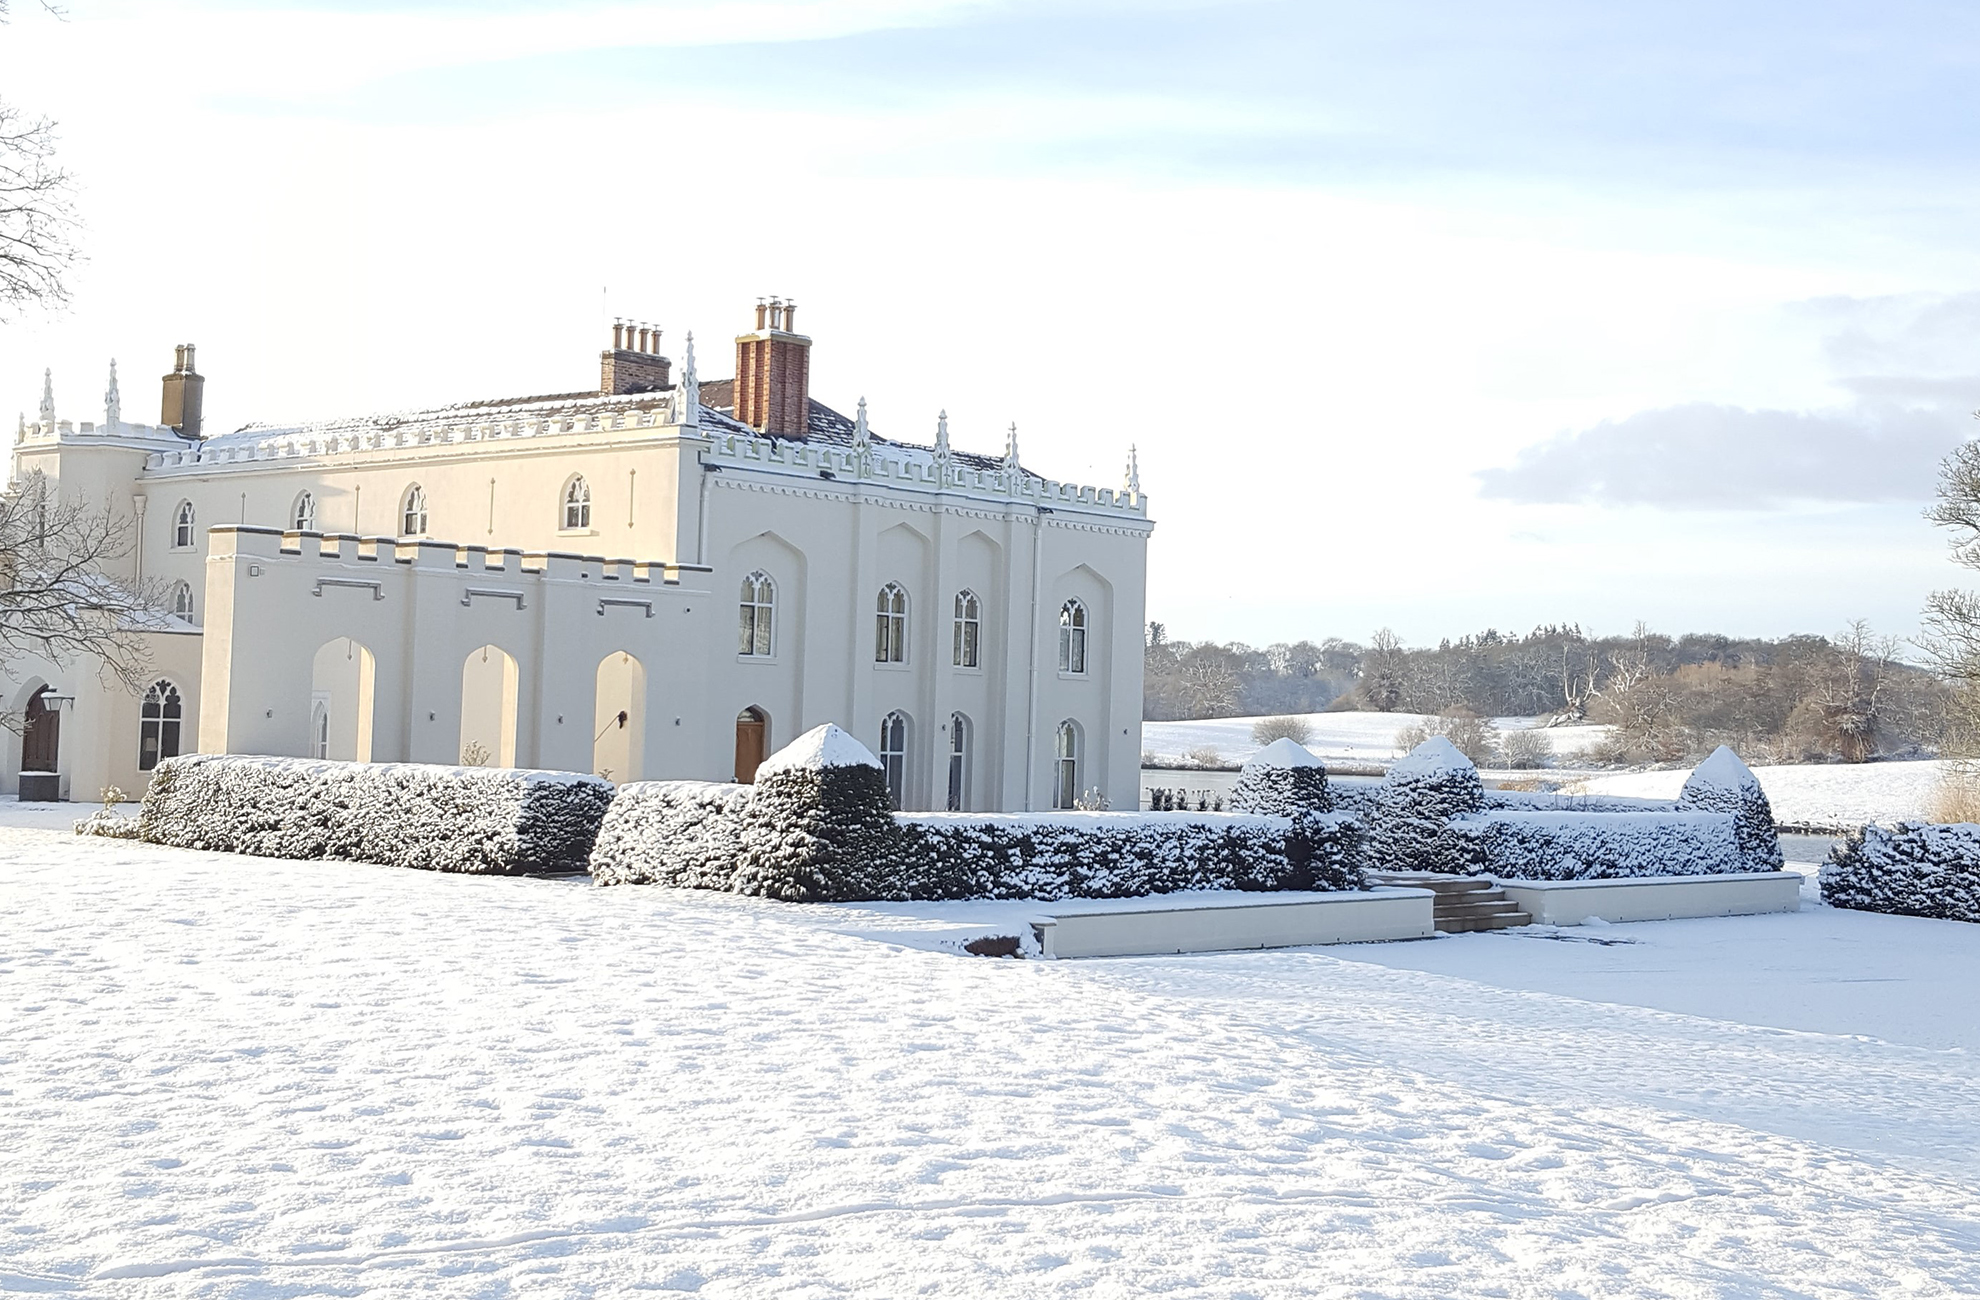 The North Wing at Combermere Abbey looks beautiful in the snow